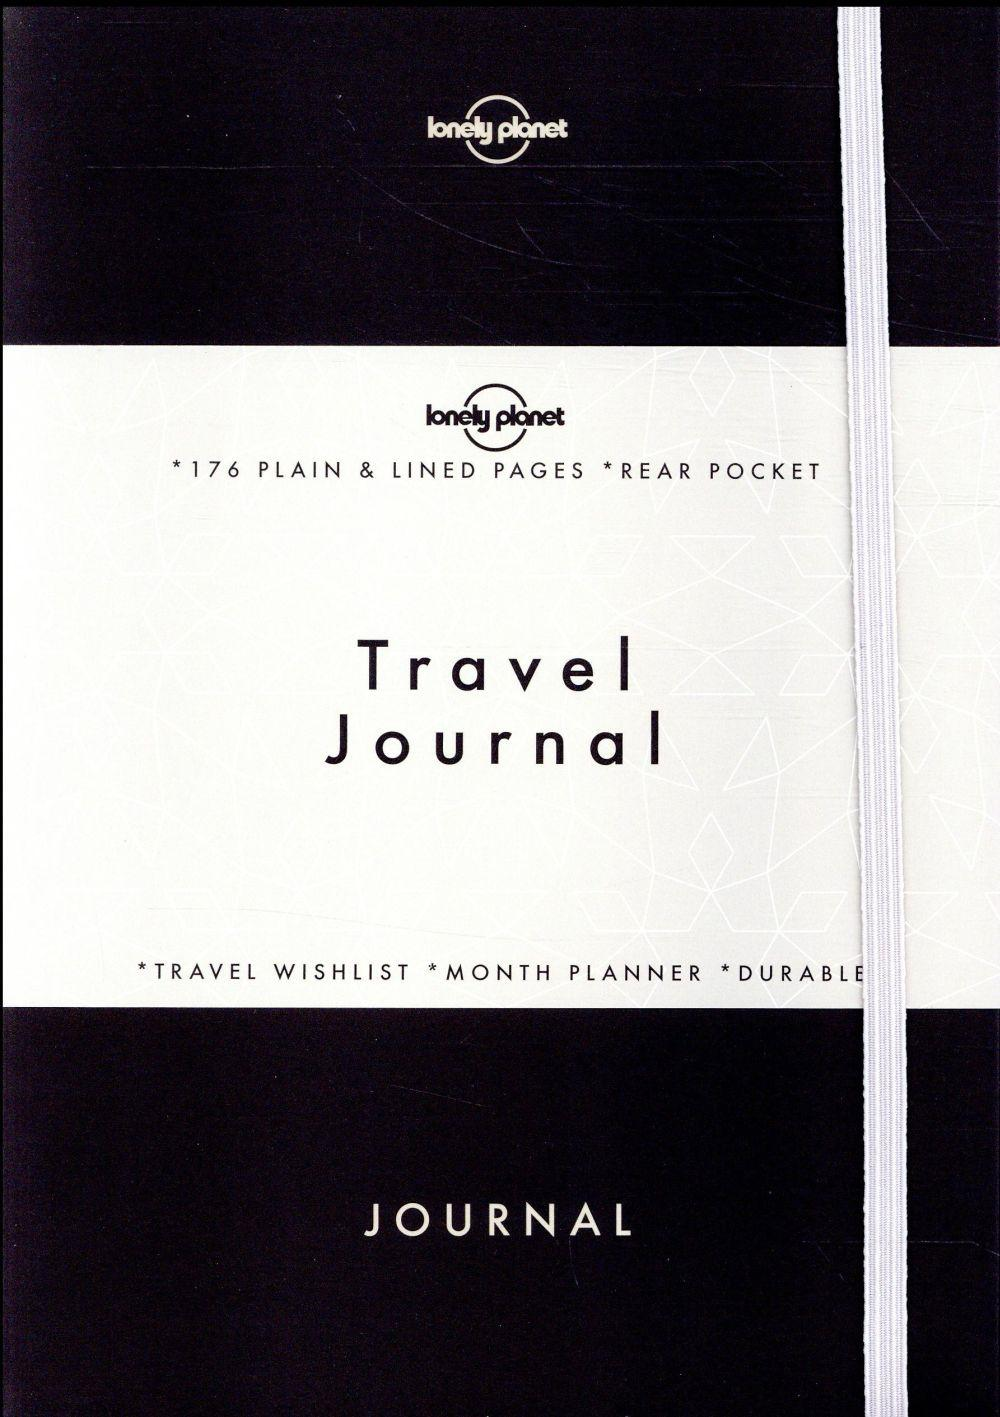 Vente  Lonely planet traveller's journal (édition 2017)  - Collectif